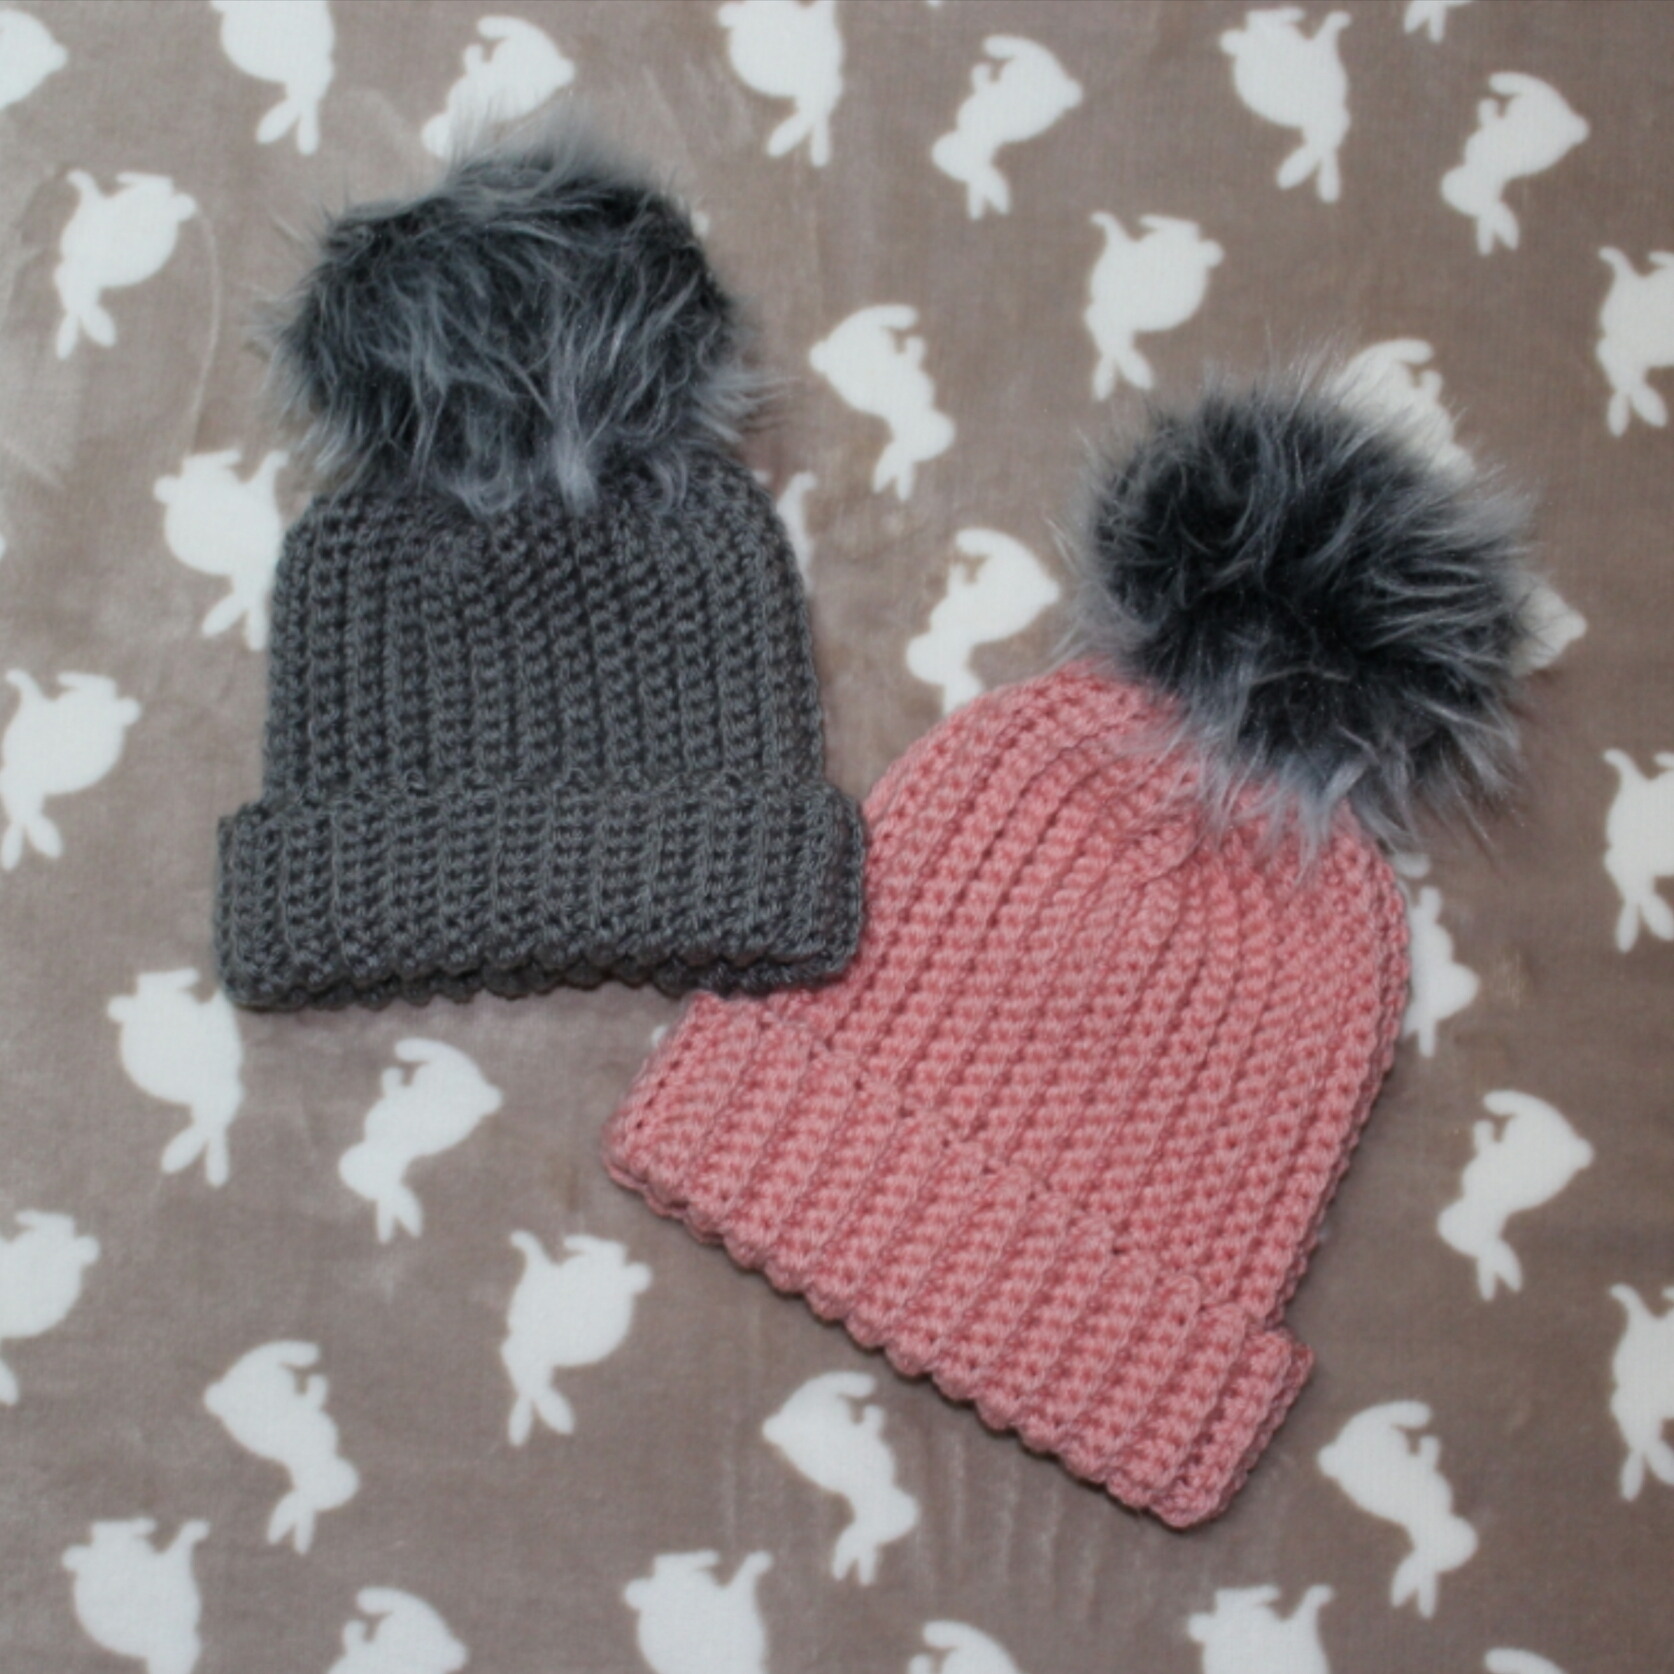 free-crochet-pattern-for-the-easy-stretch-beanie-adult-and-child-sizes-with-a-warm-perfect-fit-for-the-whole-season